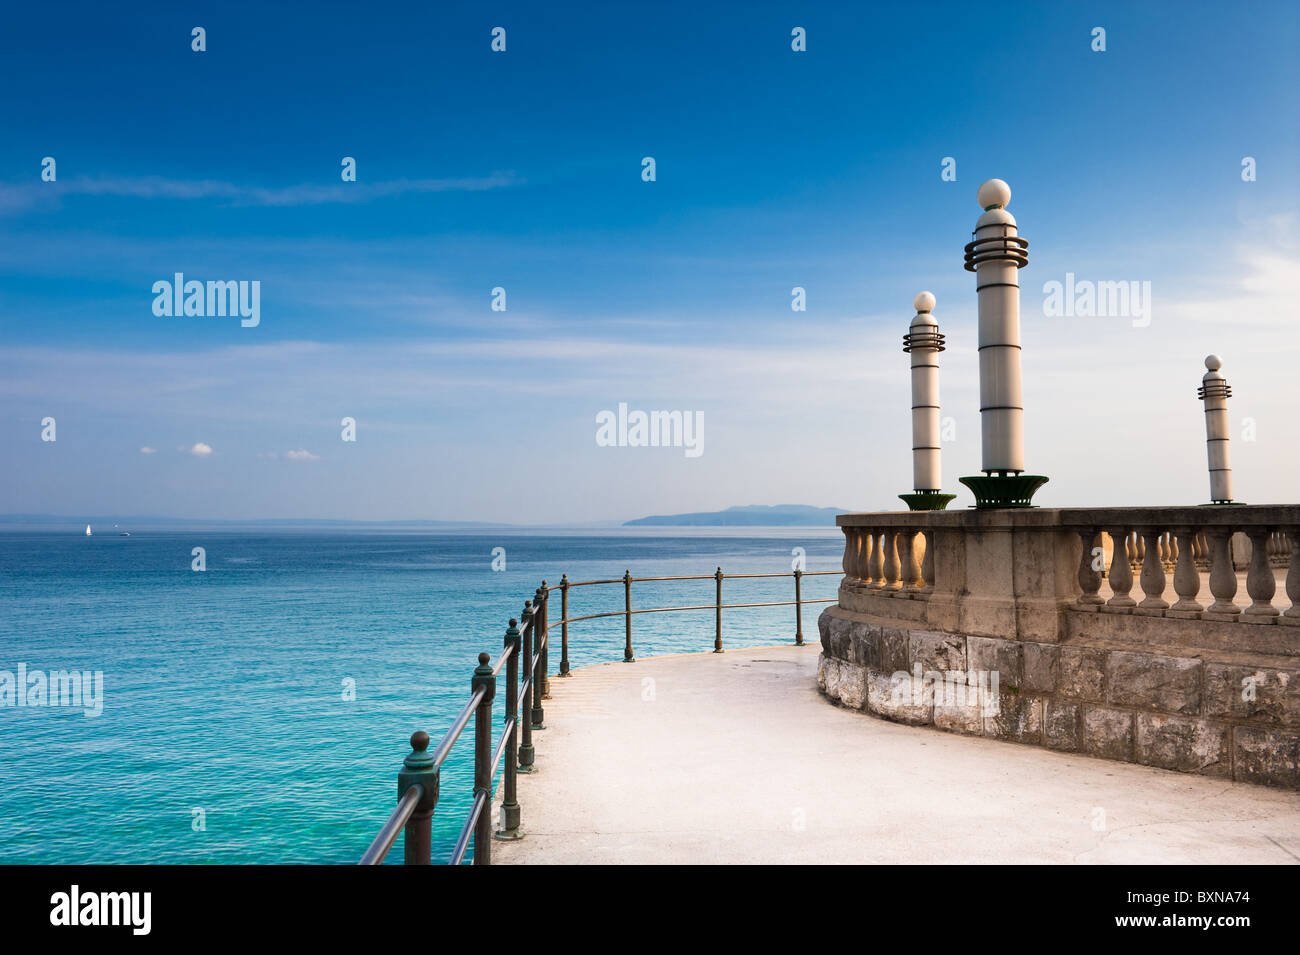 Adriatic Sea scenic view from quay of Opatija. Popular touristic destination  Croatian coast. - Stock Image